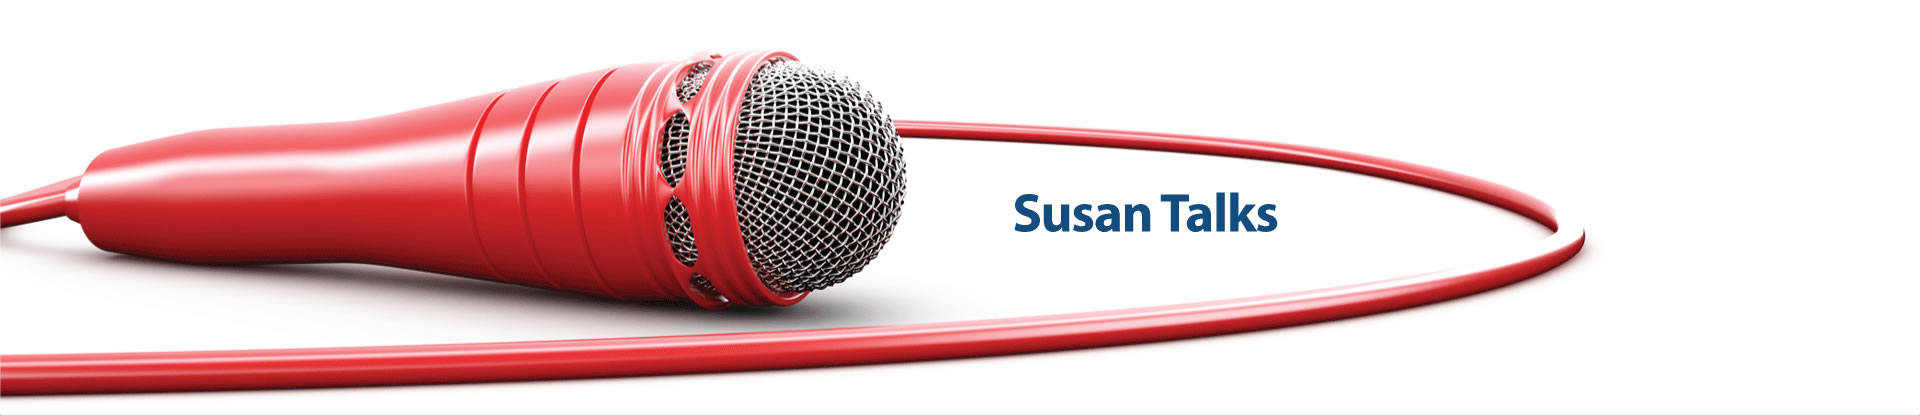 Susan Talks